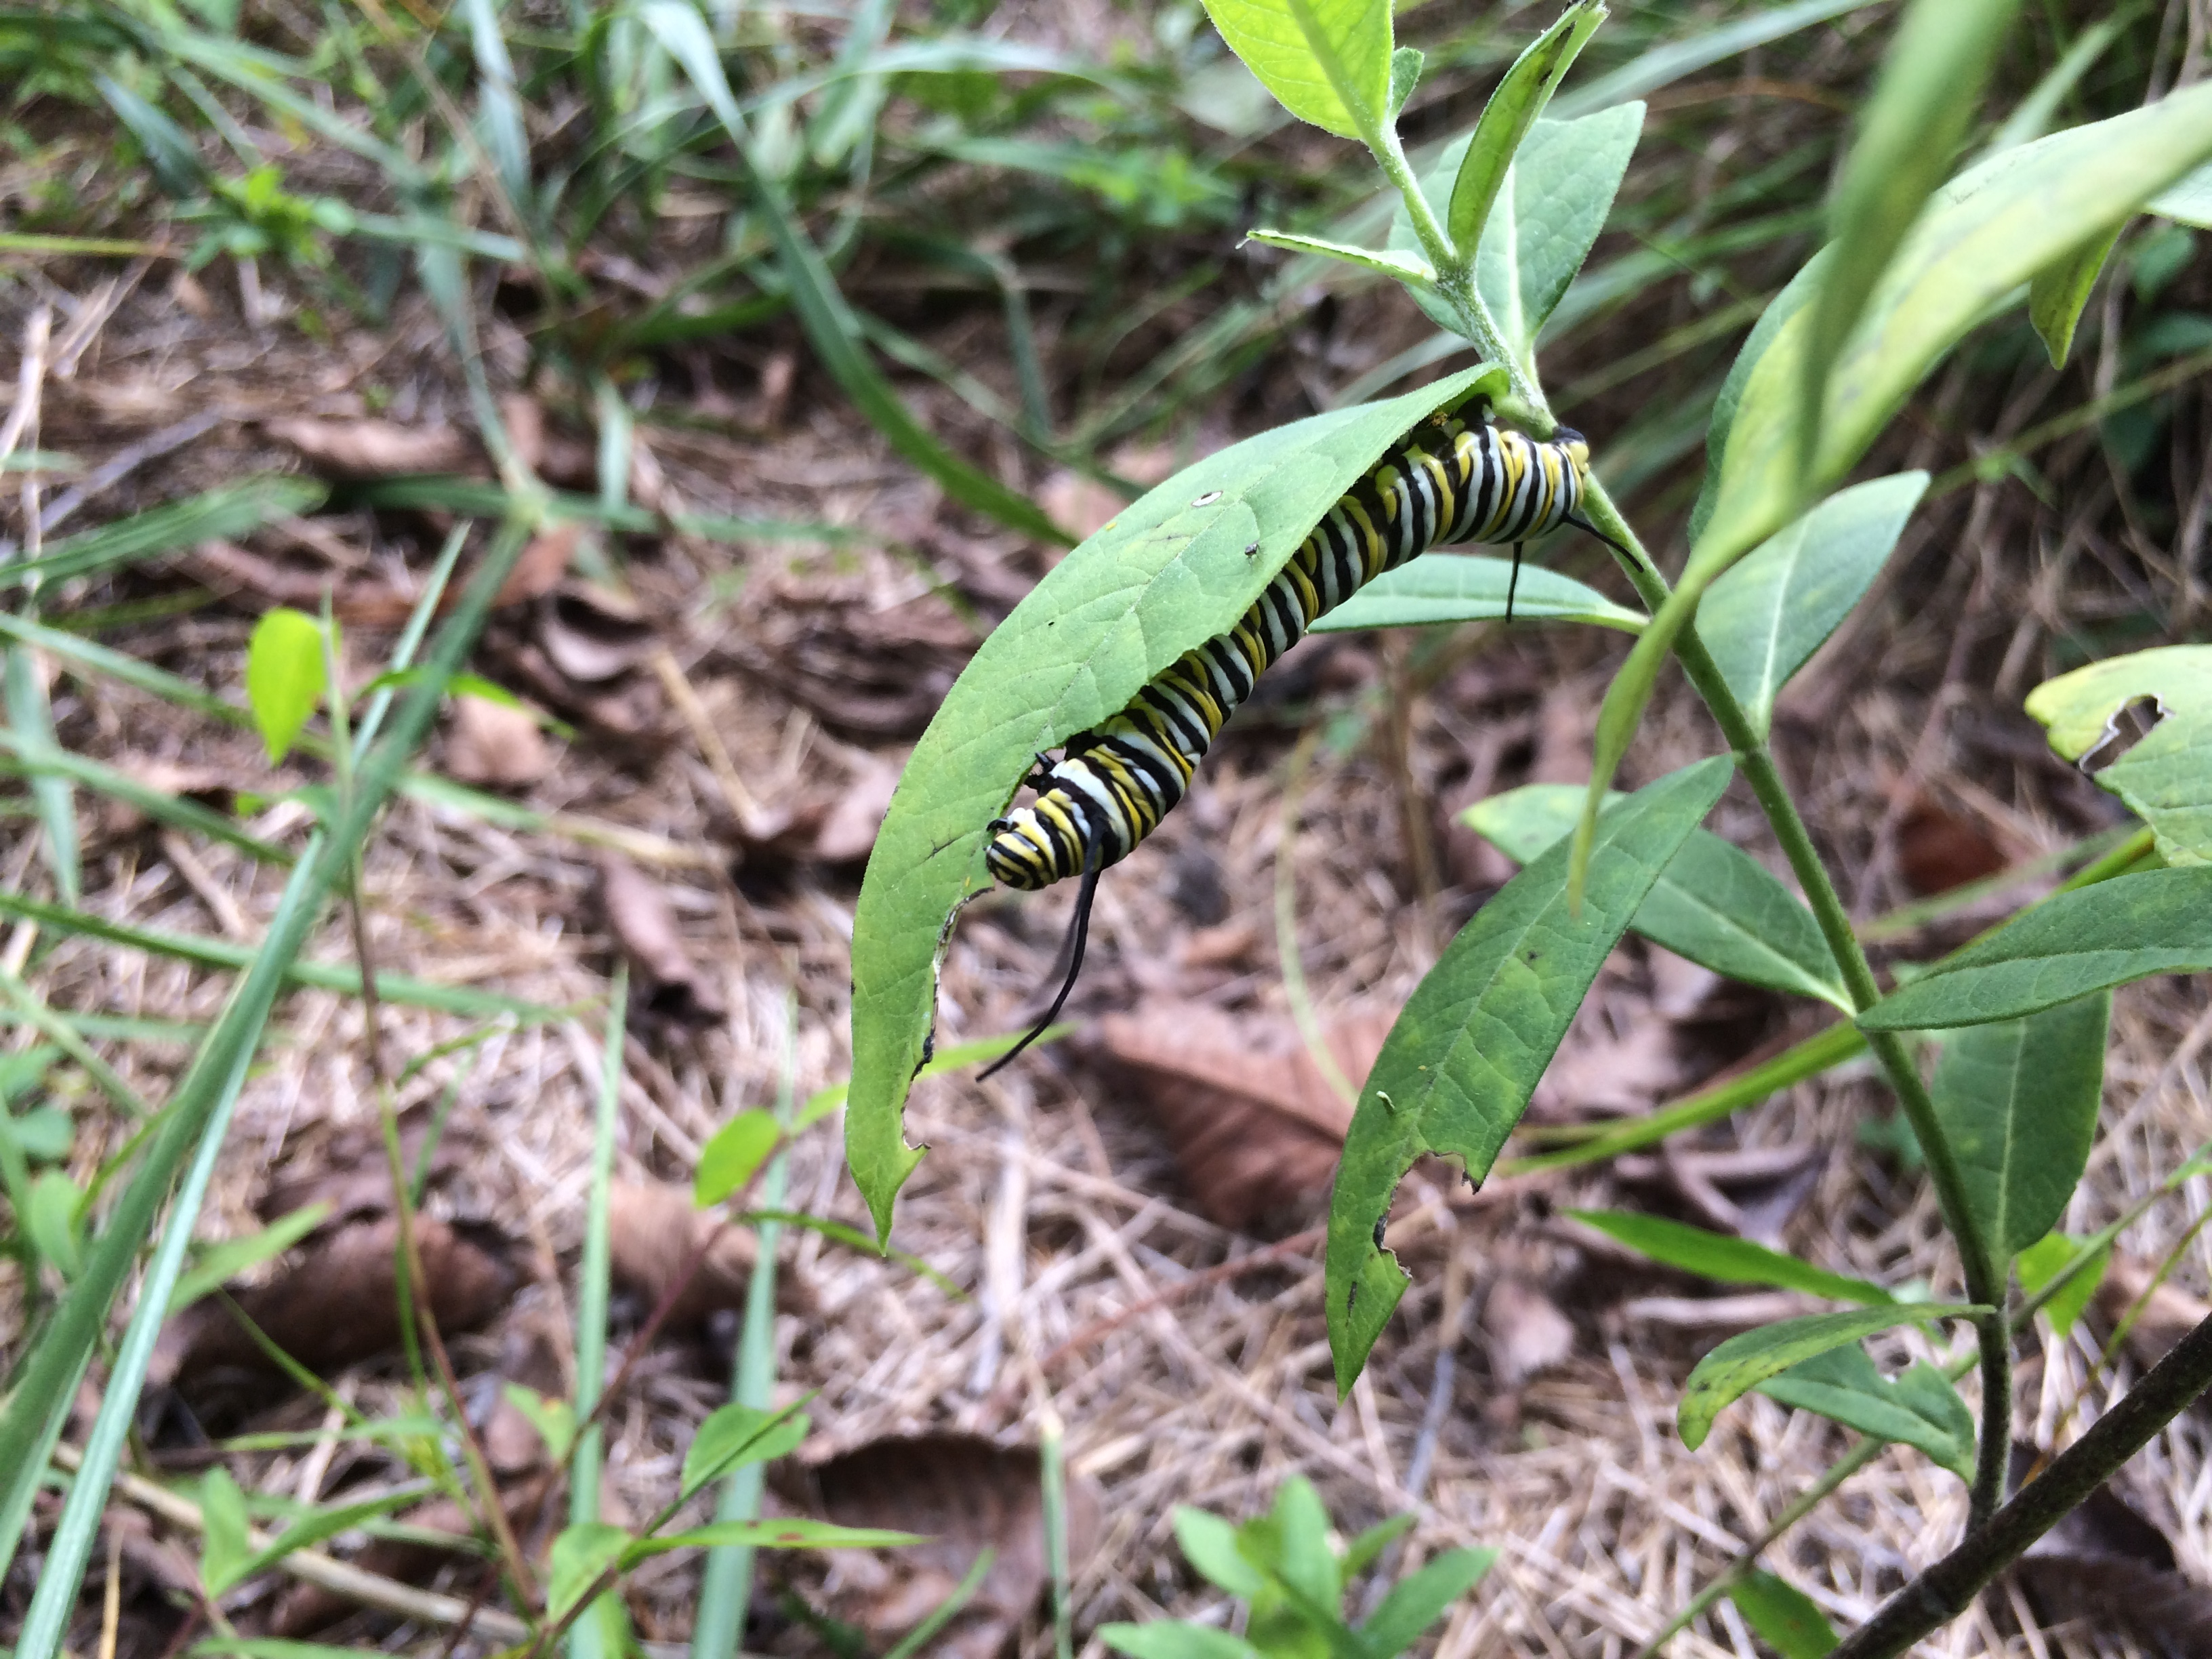 A yellow-and-white striped Monarch butterfly caterpillar munches on the leaves of a milkweed plant